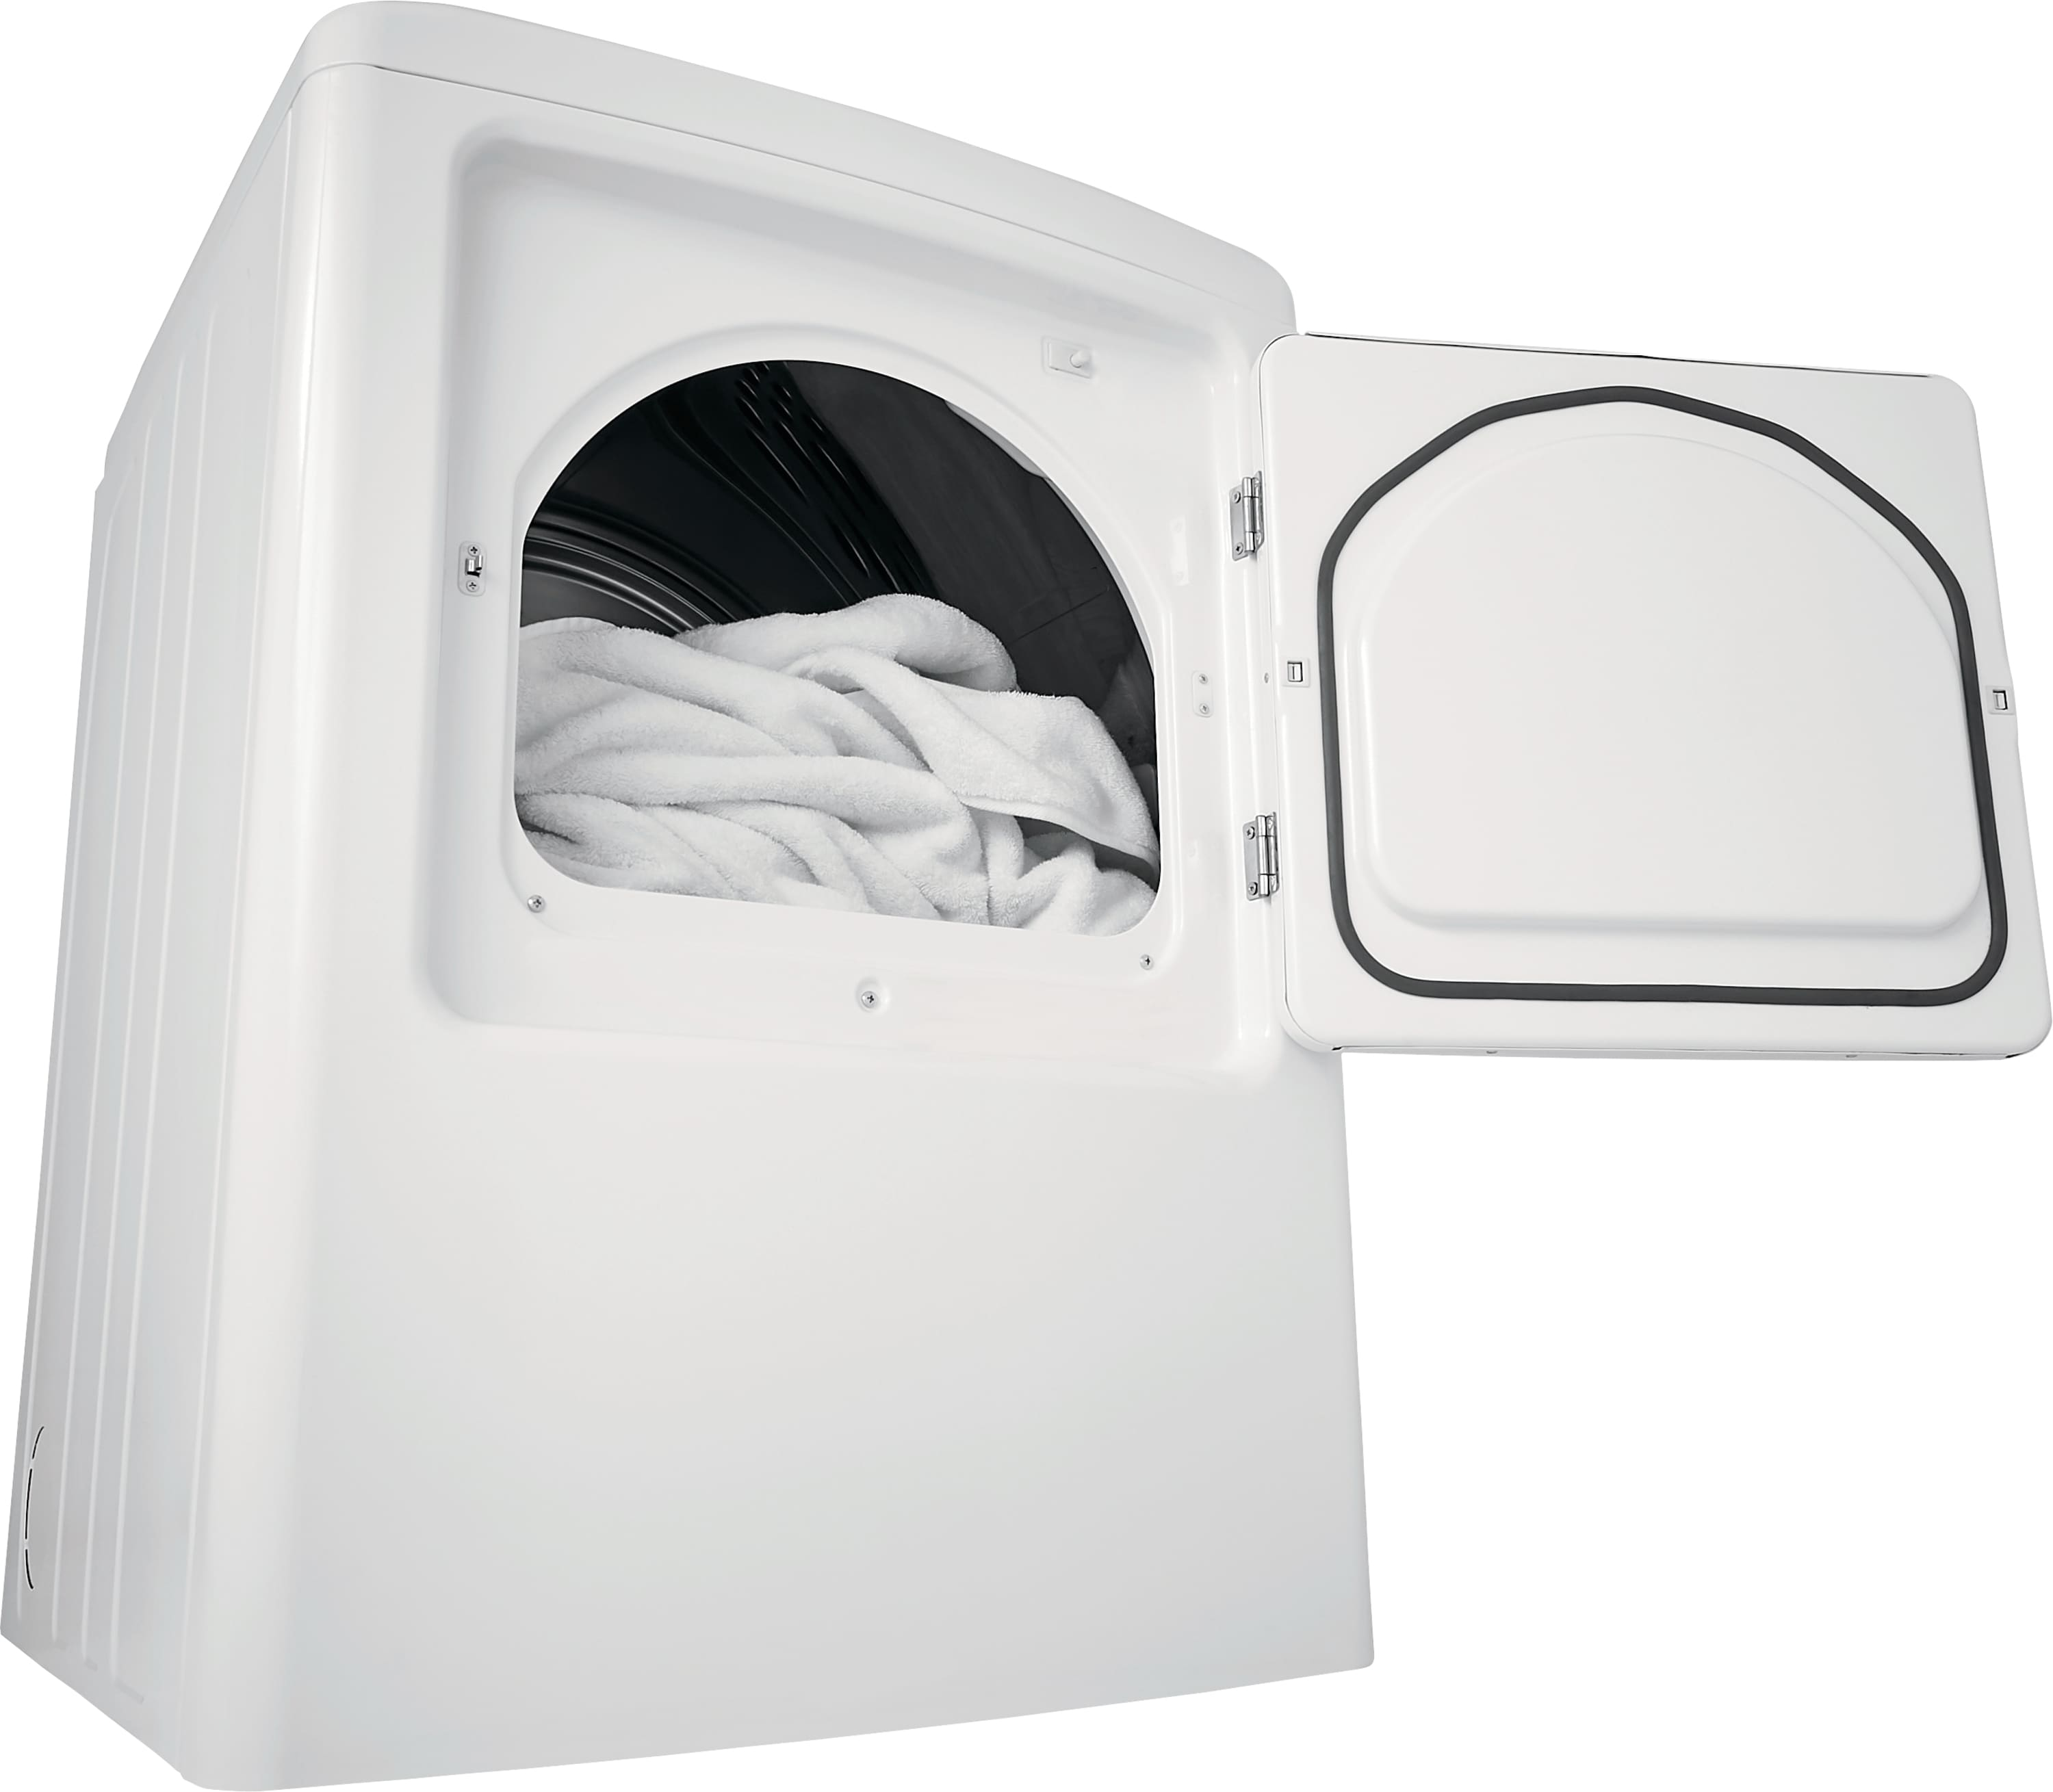 Model: FFRE4120SW | 6.7 Cu. Ft. Free Standing Electric Dryer